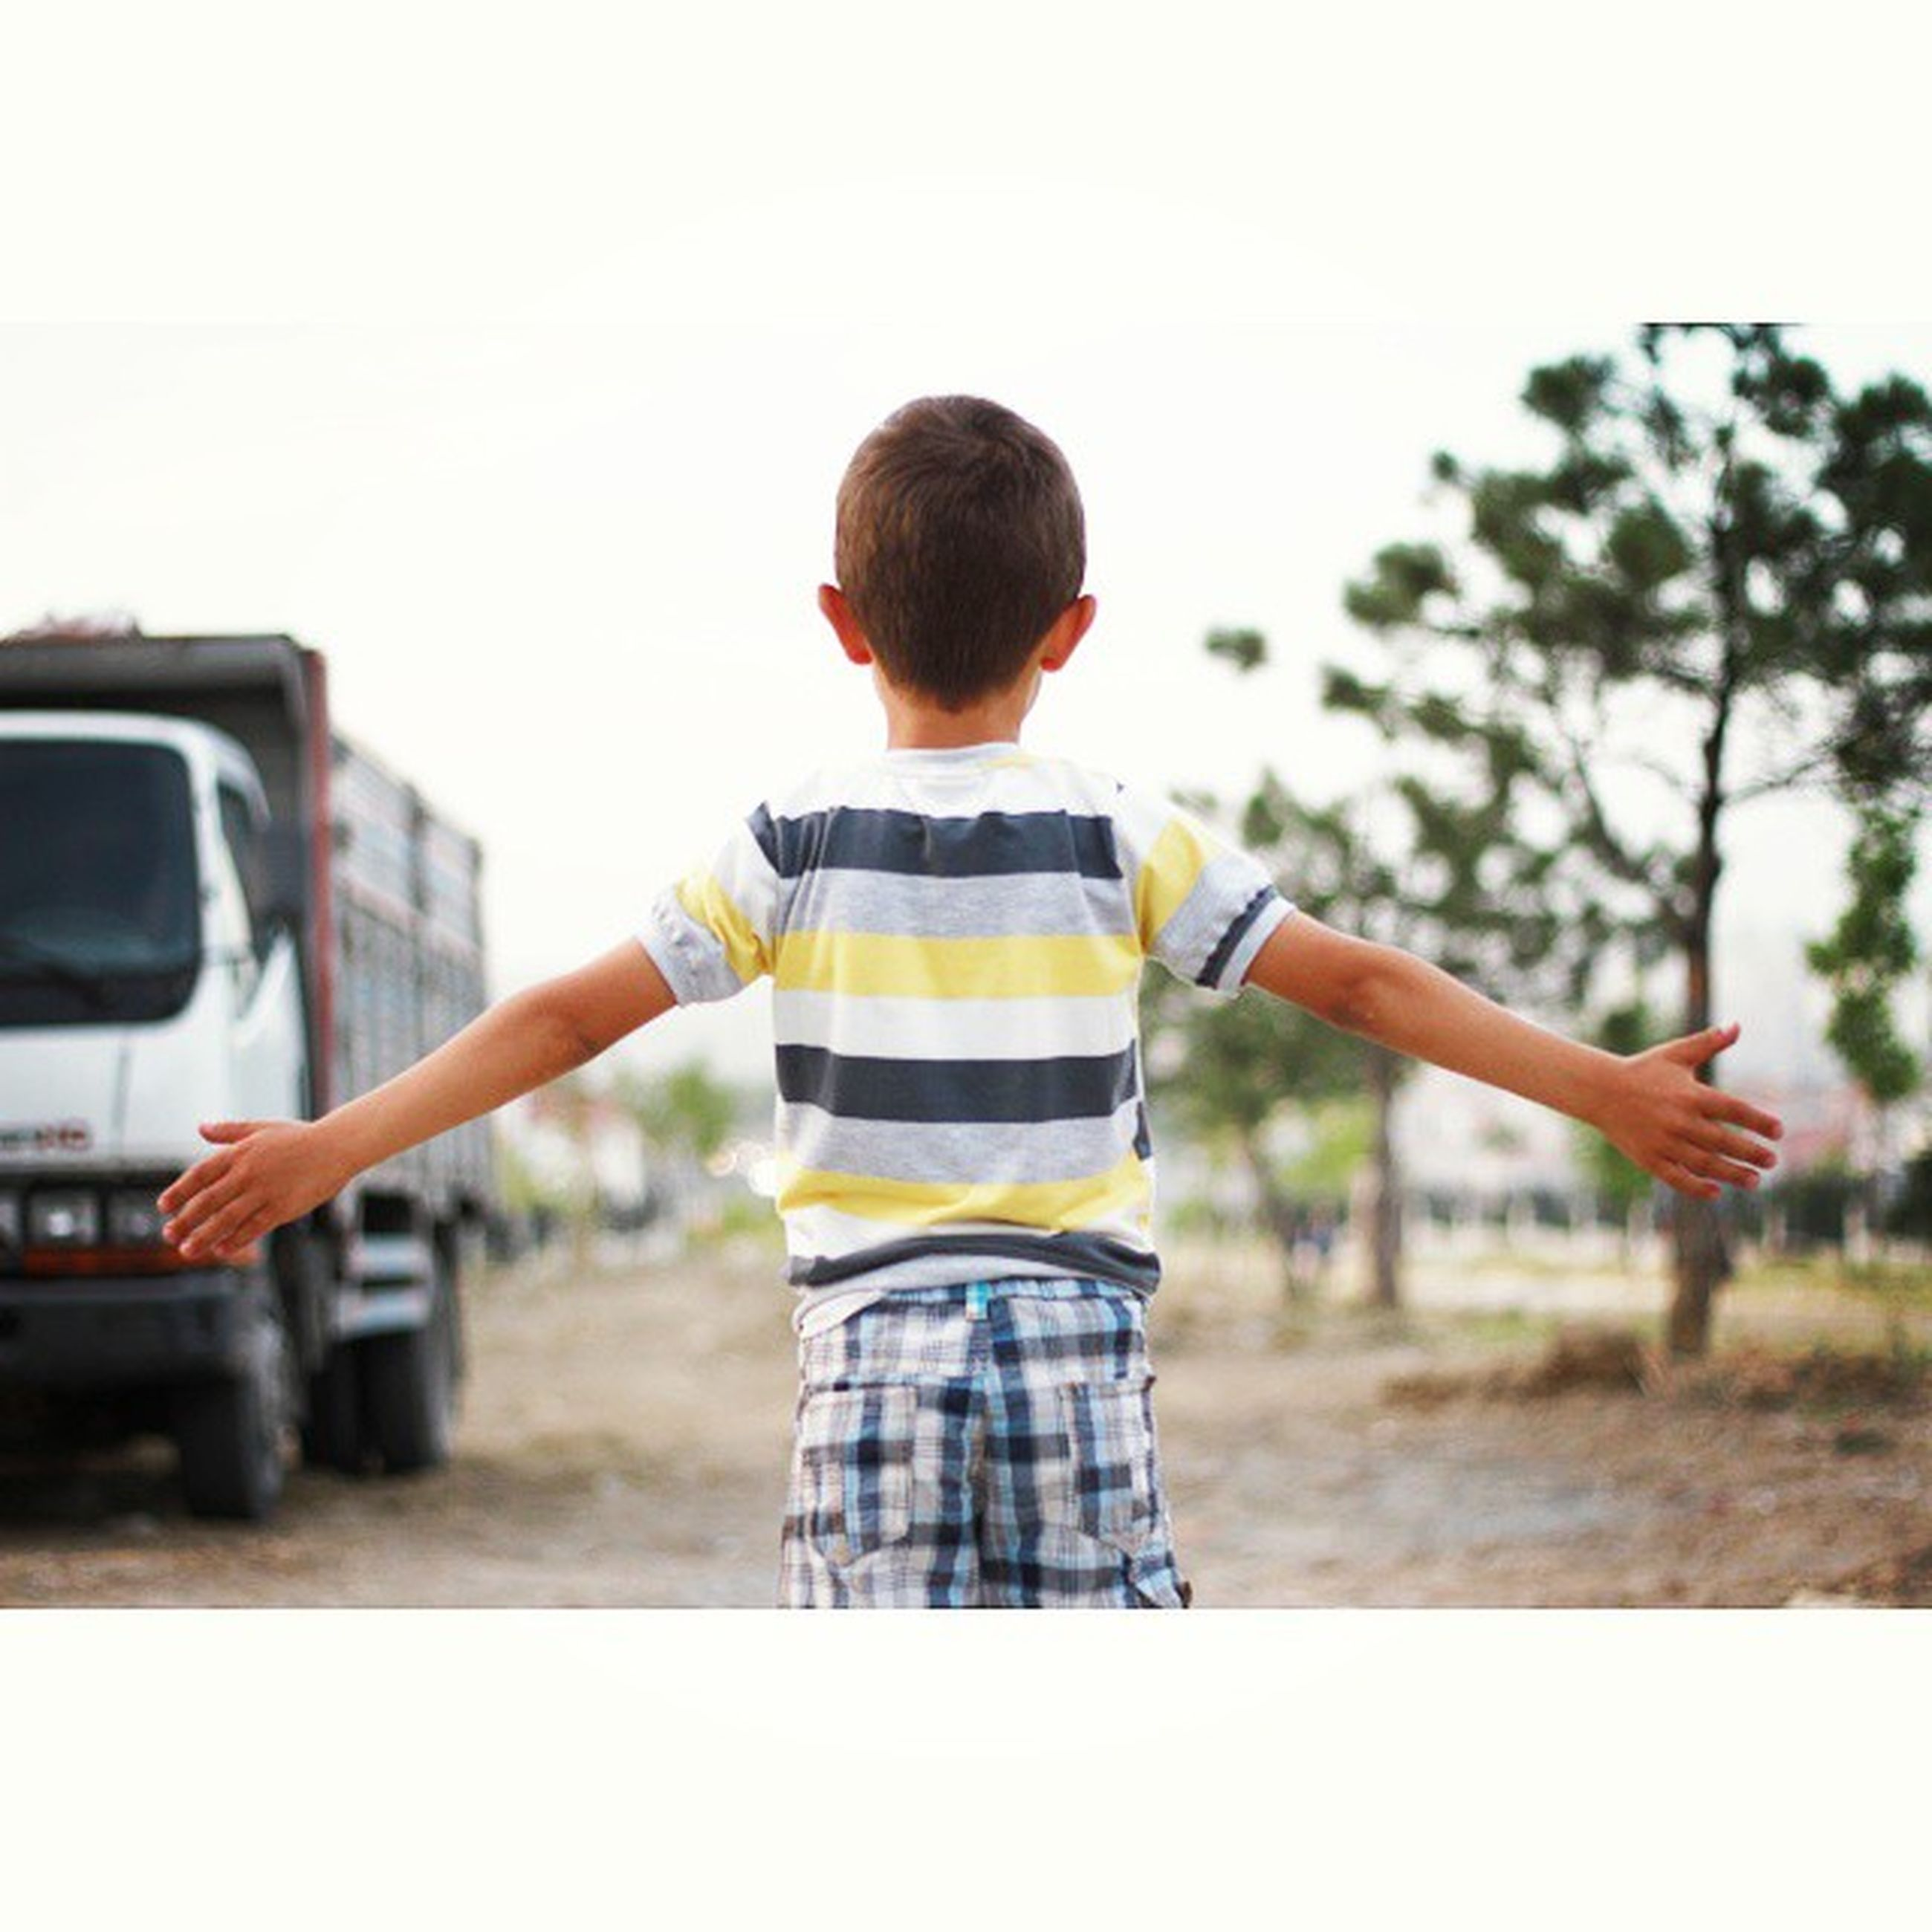 focus on foreground, lifestyles, leisure activity, casual clothing, full length, childhood, rear view, clear sky, side view, boys, holding, standing, person, elementary age, outdoors, day, front view, selective focus